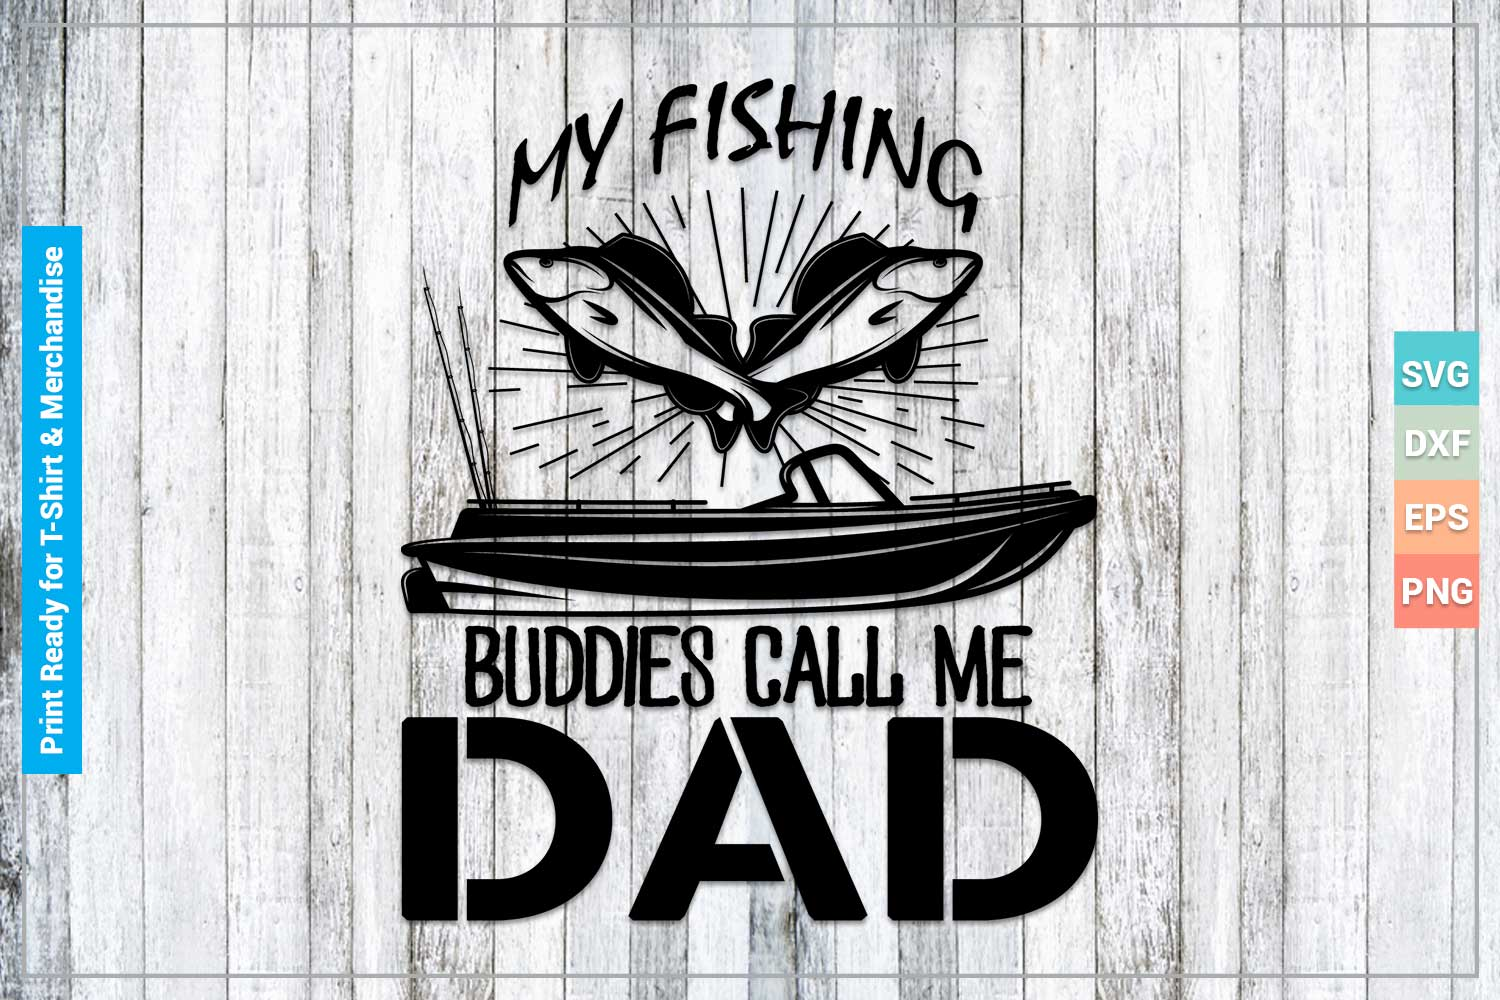 Download My Fishing Buddies Dad Svg Cricut Files Graphic By Svgitems Creative Fabrica